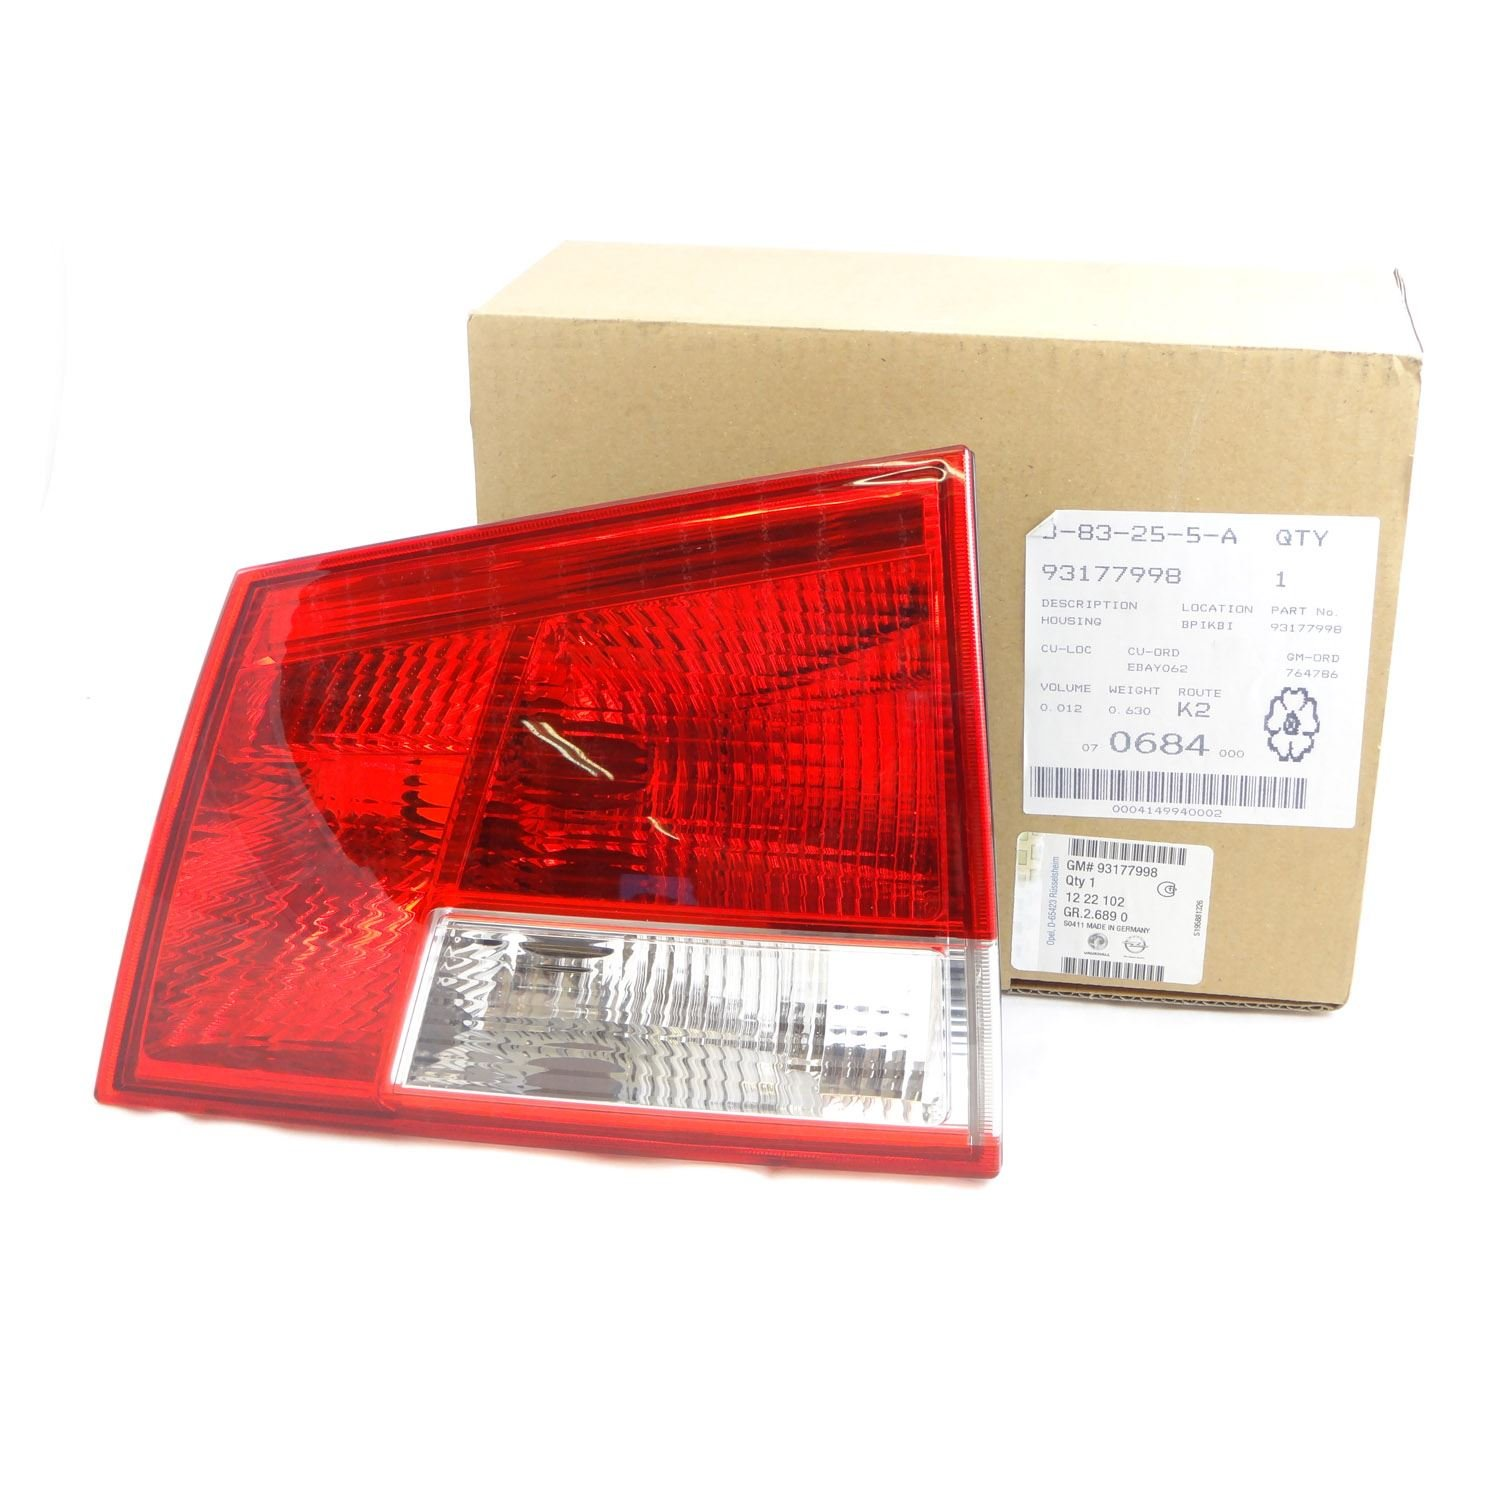 VAUXHALL VECTRA C DRIVERS SIDE REAR TAIL LIGHT 2002-2008